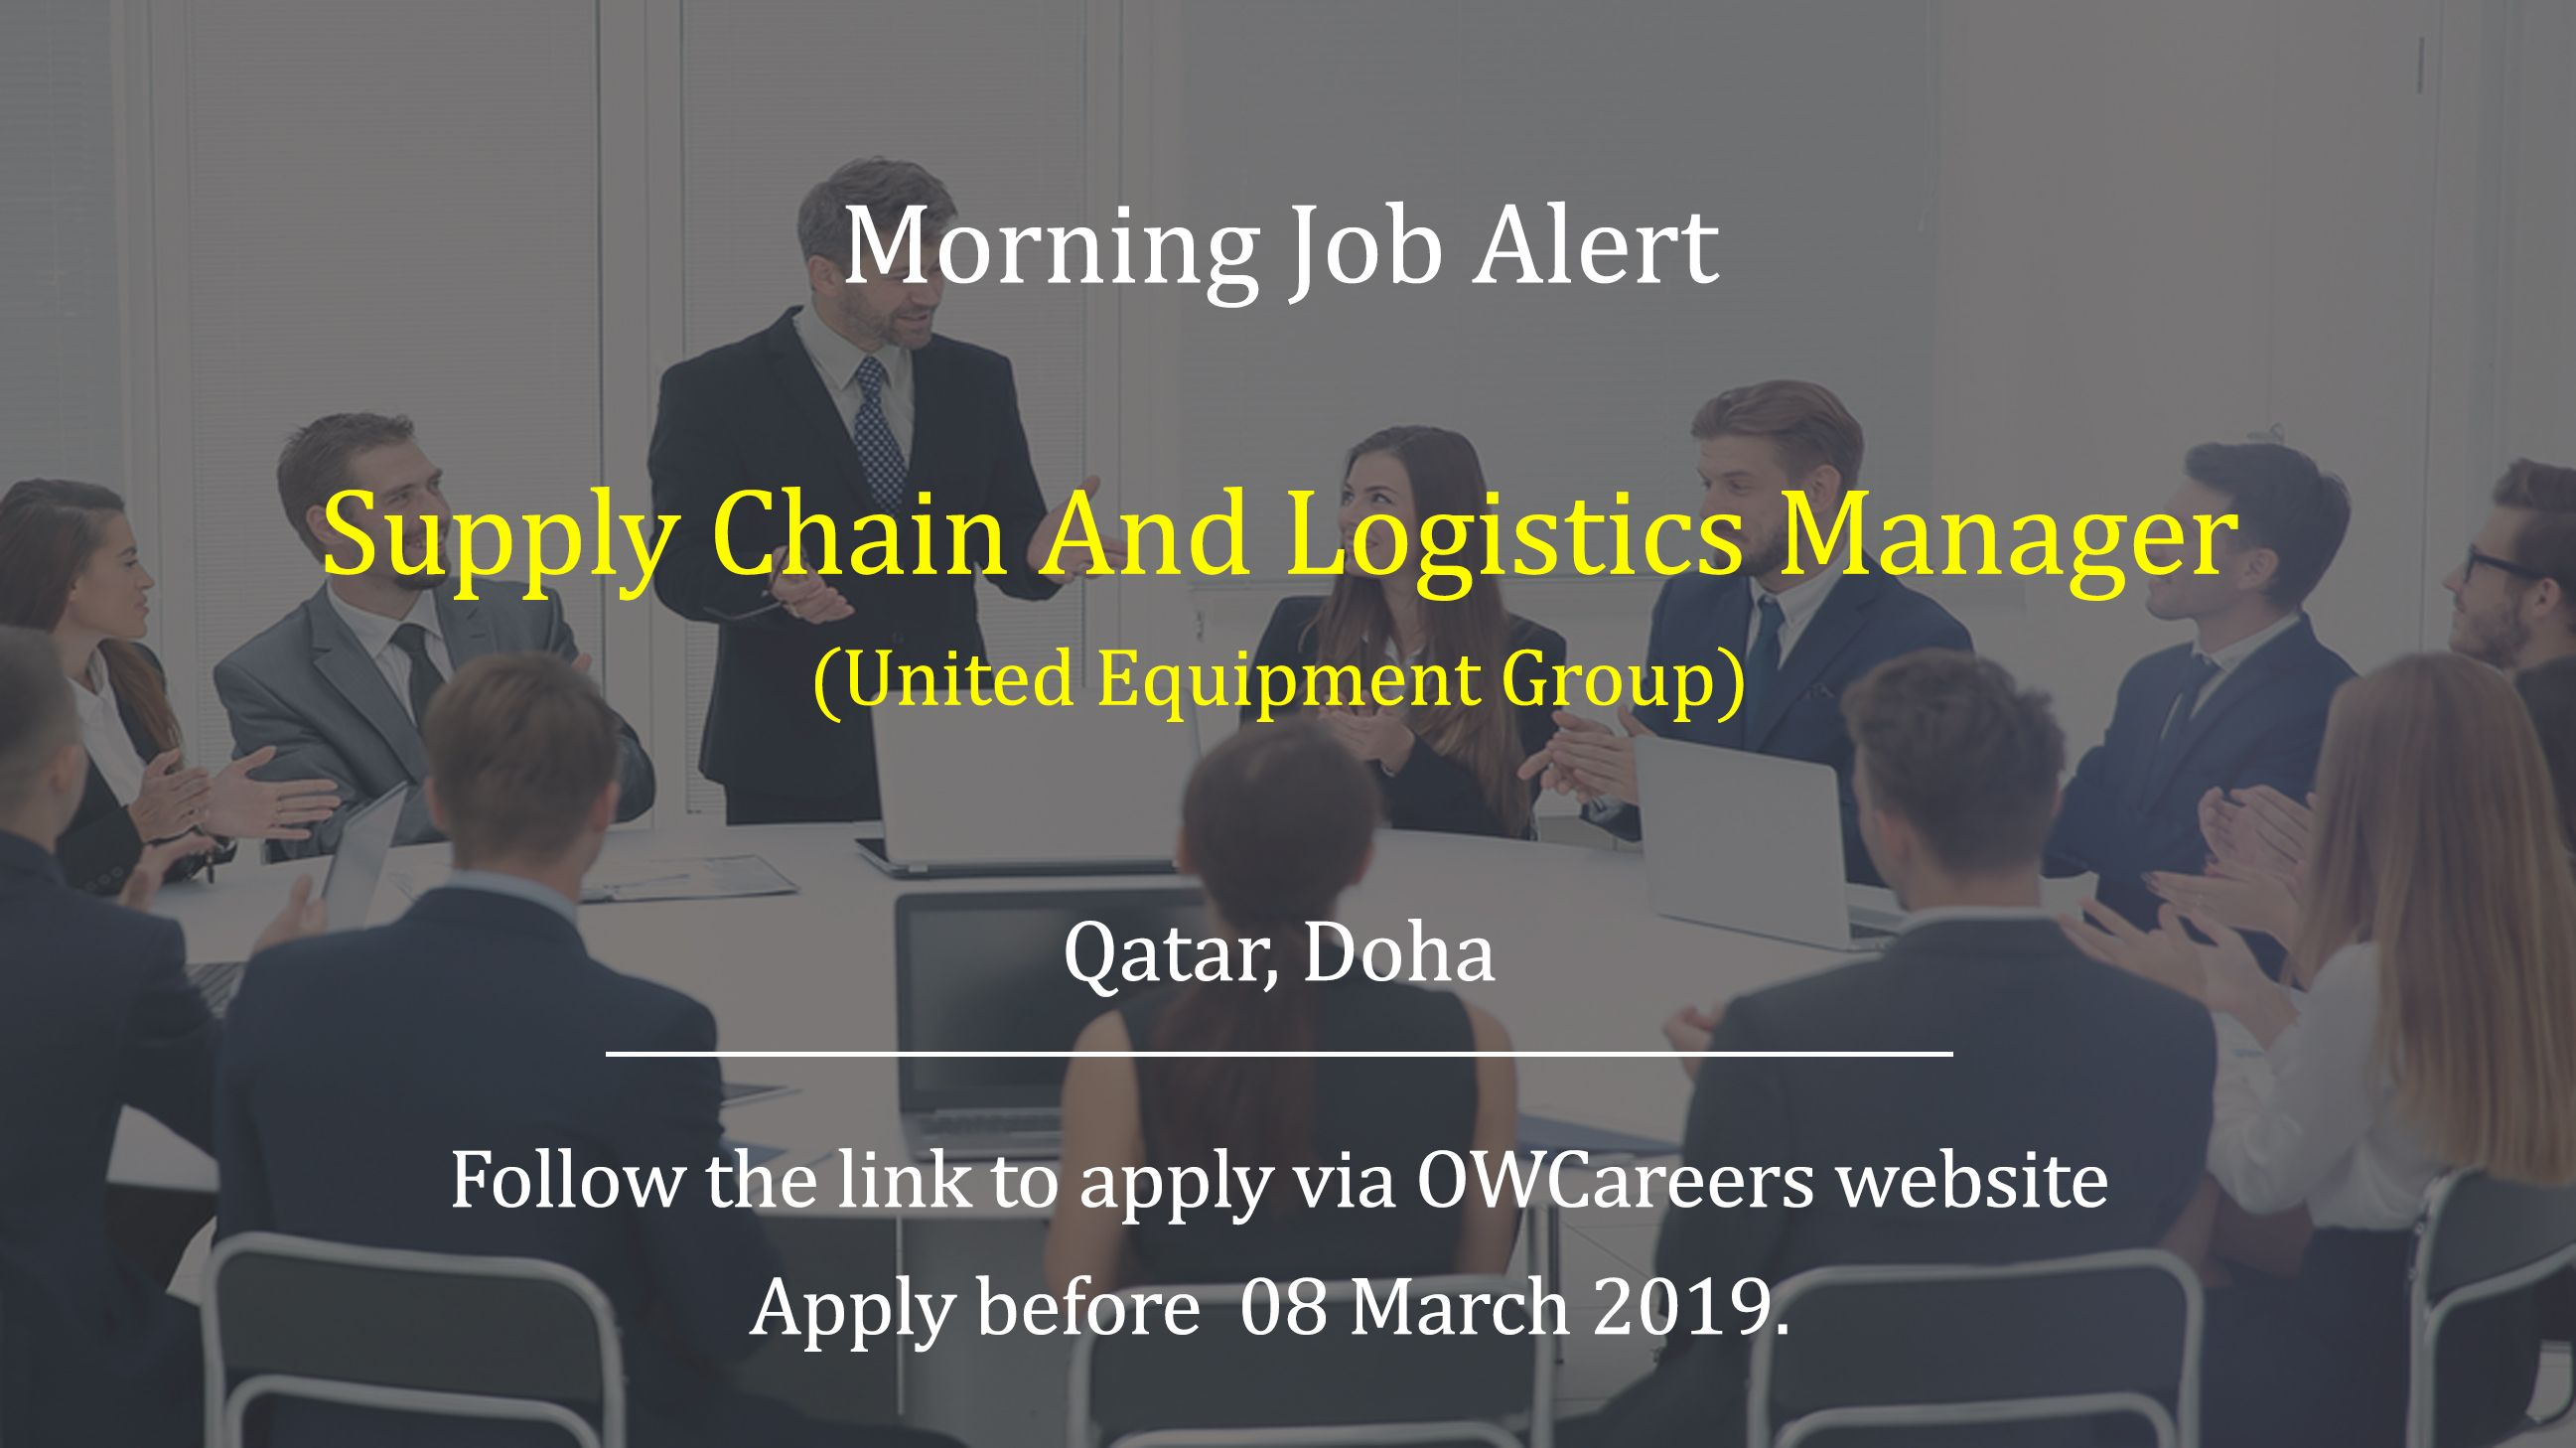 Supply Chain And Logistics Manager Job is available with